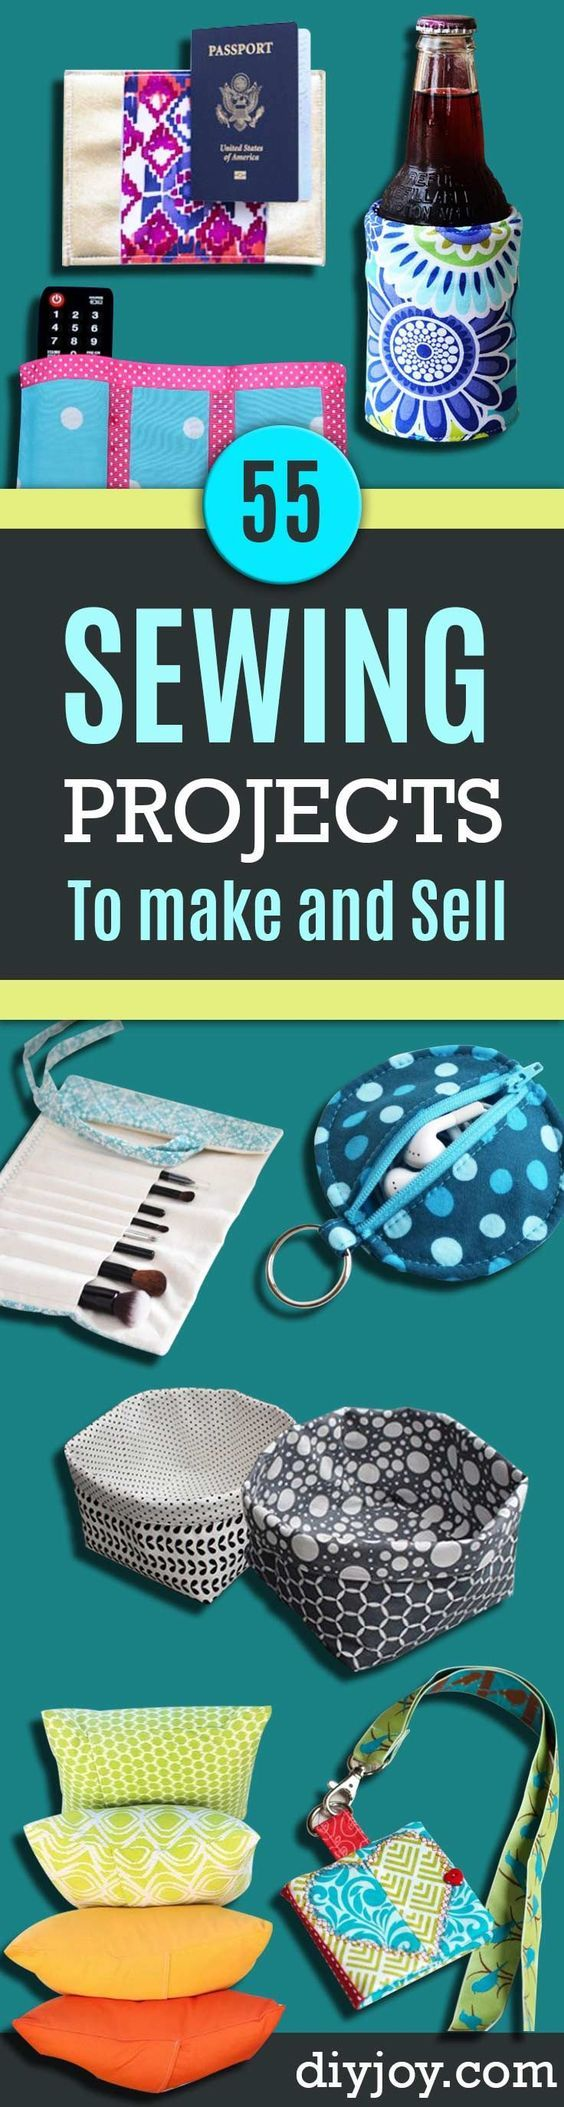 These 7 easy crafts you can make and sell online are THE BEST! I'm so glad I found this AMAZING post! Now I have a plan for making money online! I'm so EXCITED! Definitely pinning for later!